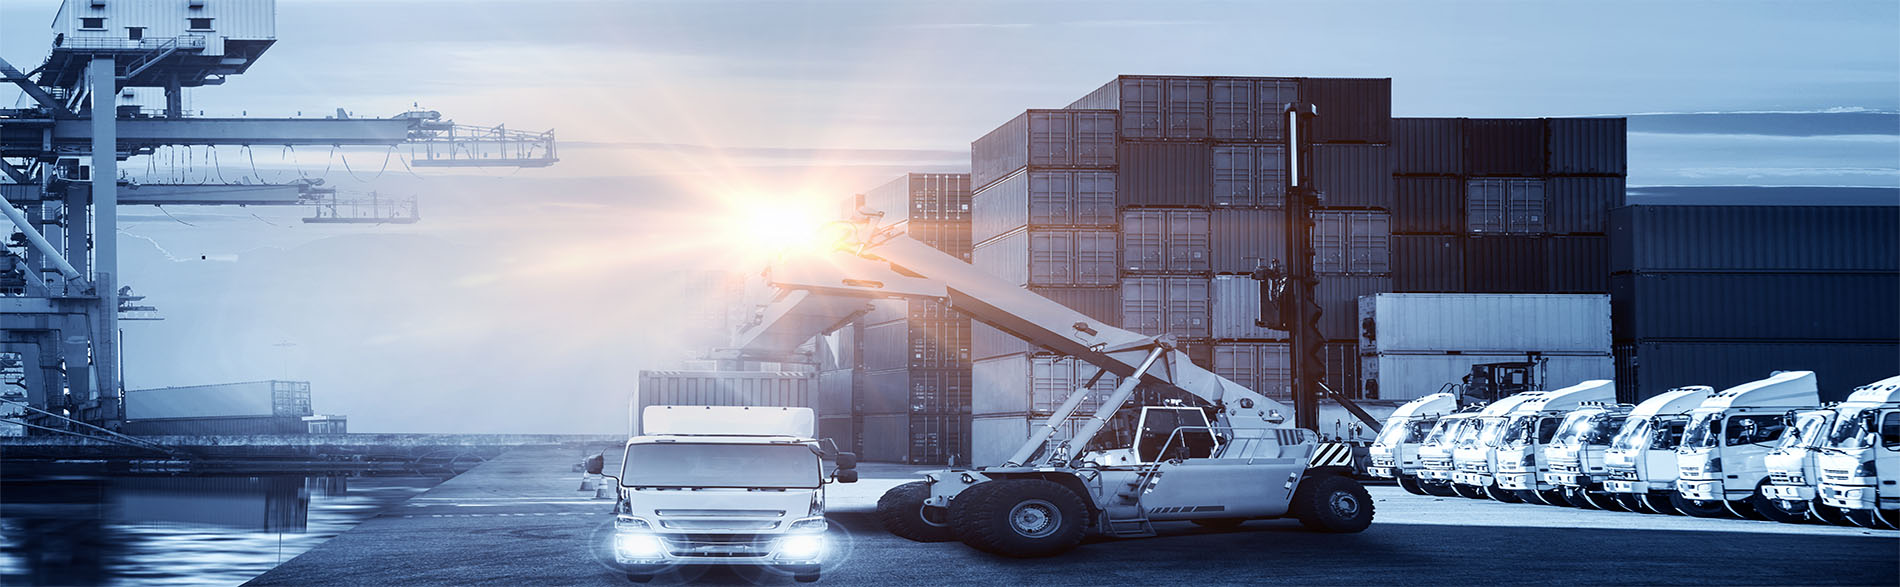 Enabled Easier Data Consumption and Improved Data Lake Adoption for a Fortune 500 Logistics Service Provider